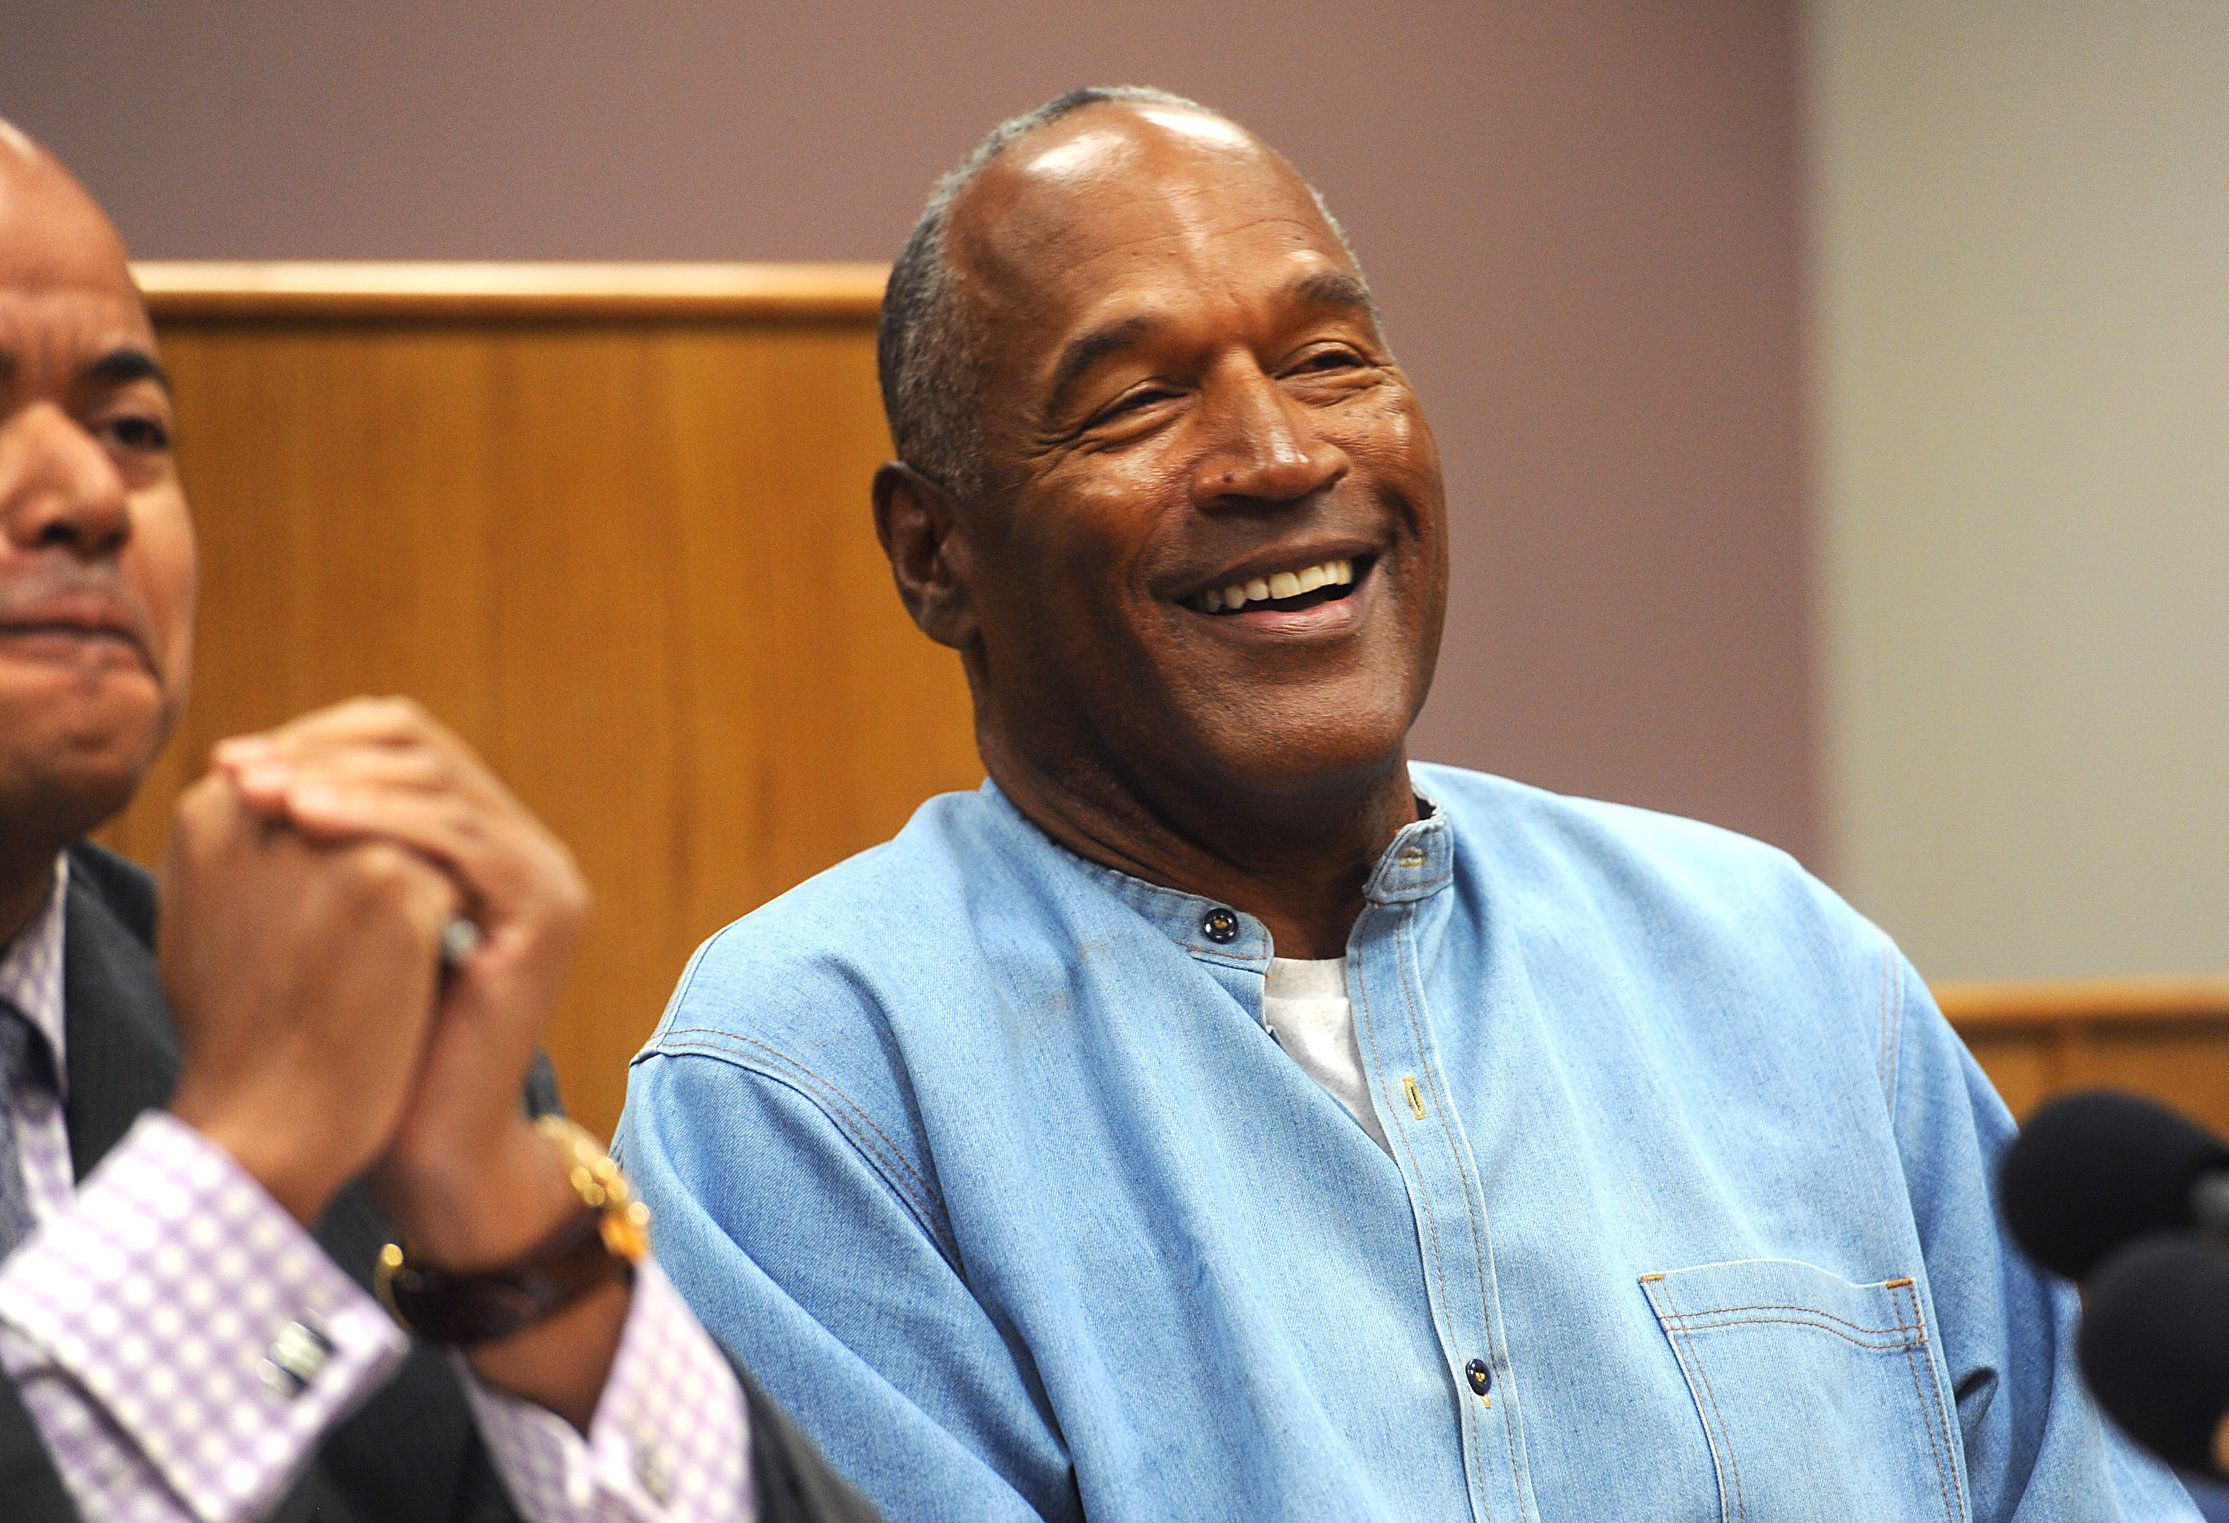 What You Missed From O.J. Simpson's Parole Hearing